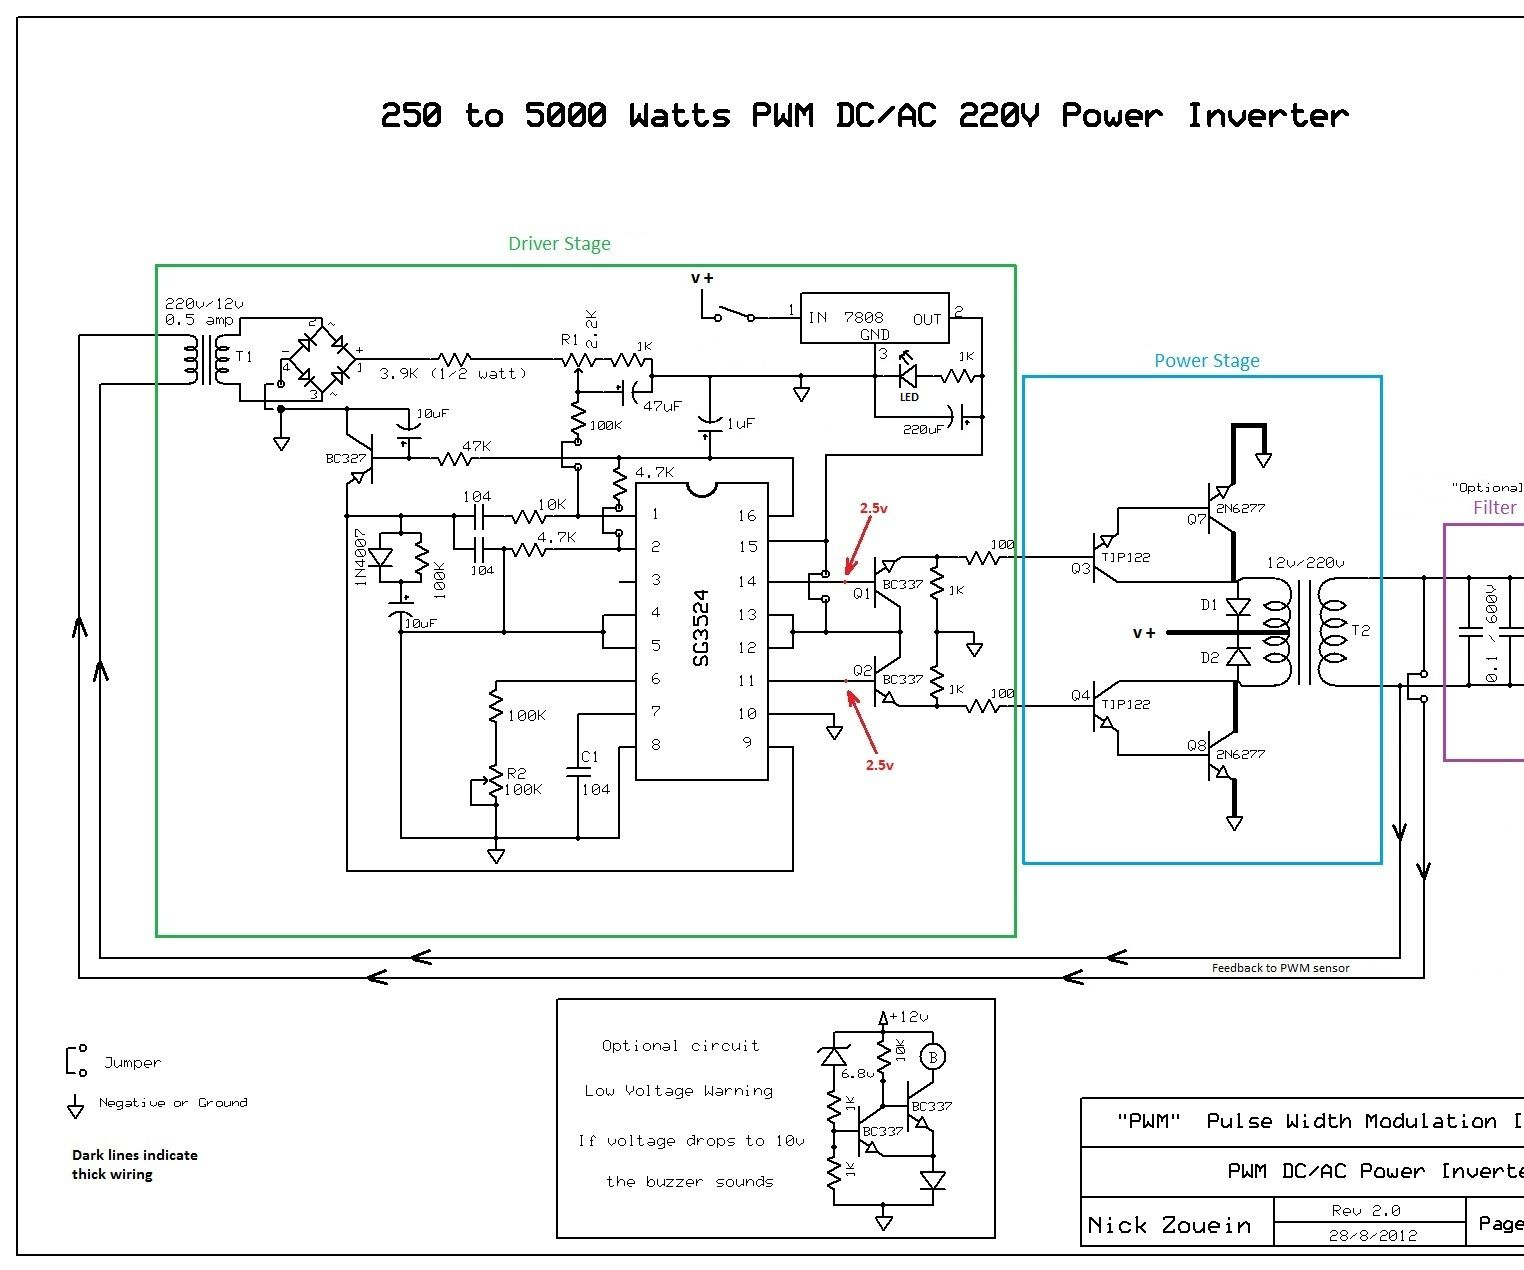 250 to 5000 watts pwm dc ac 220v power inverter how a pure sine wave inverter works circuit diagrams askcom auto [ 1524 x 1270 Pixel ]